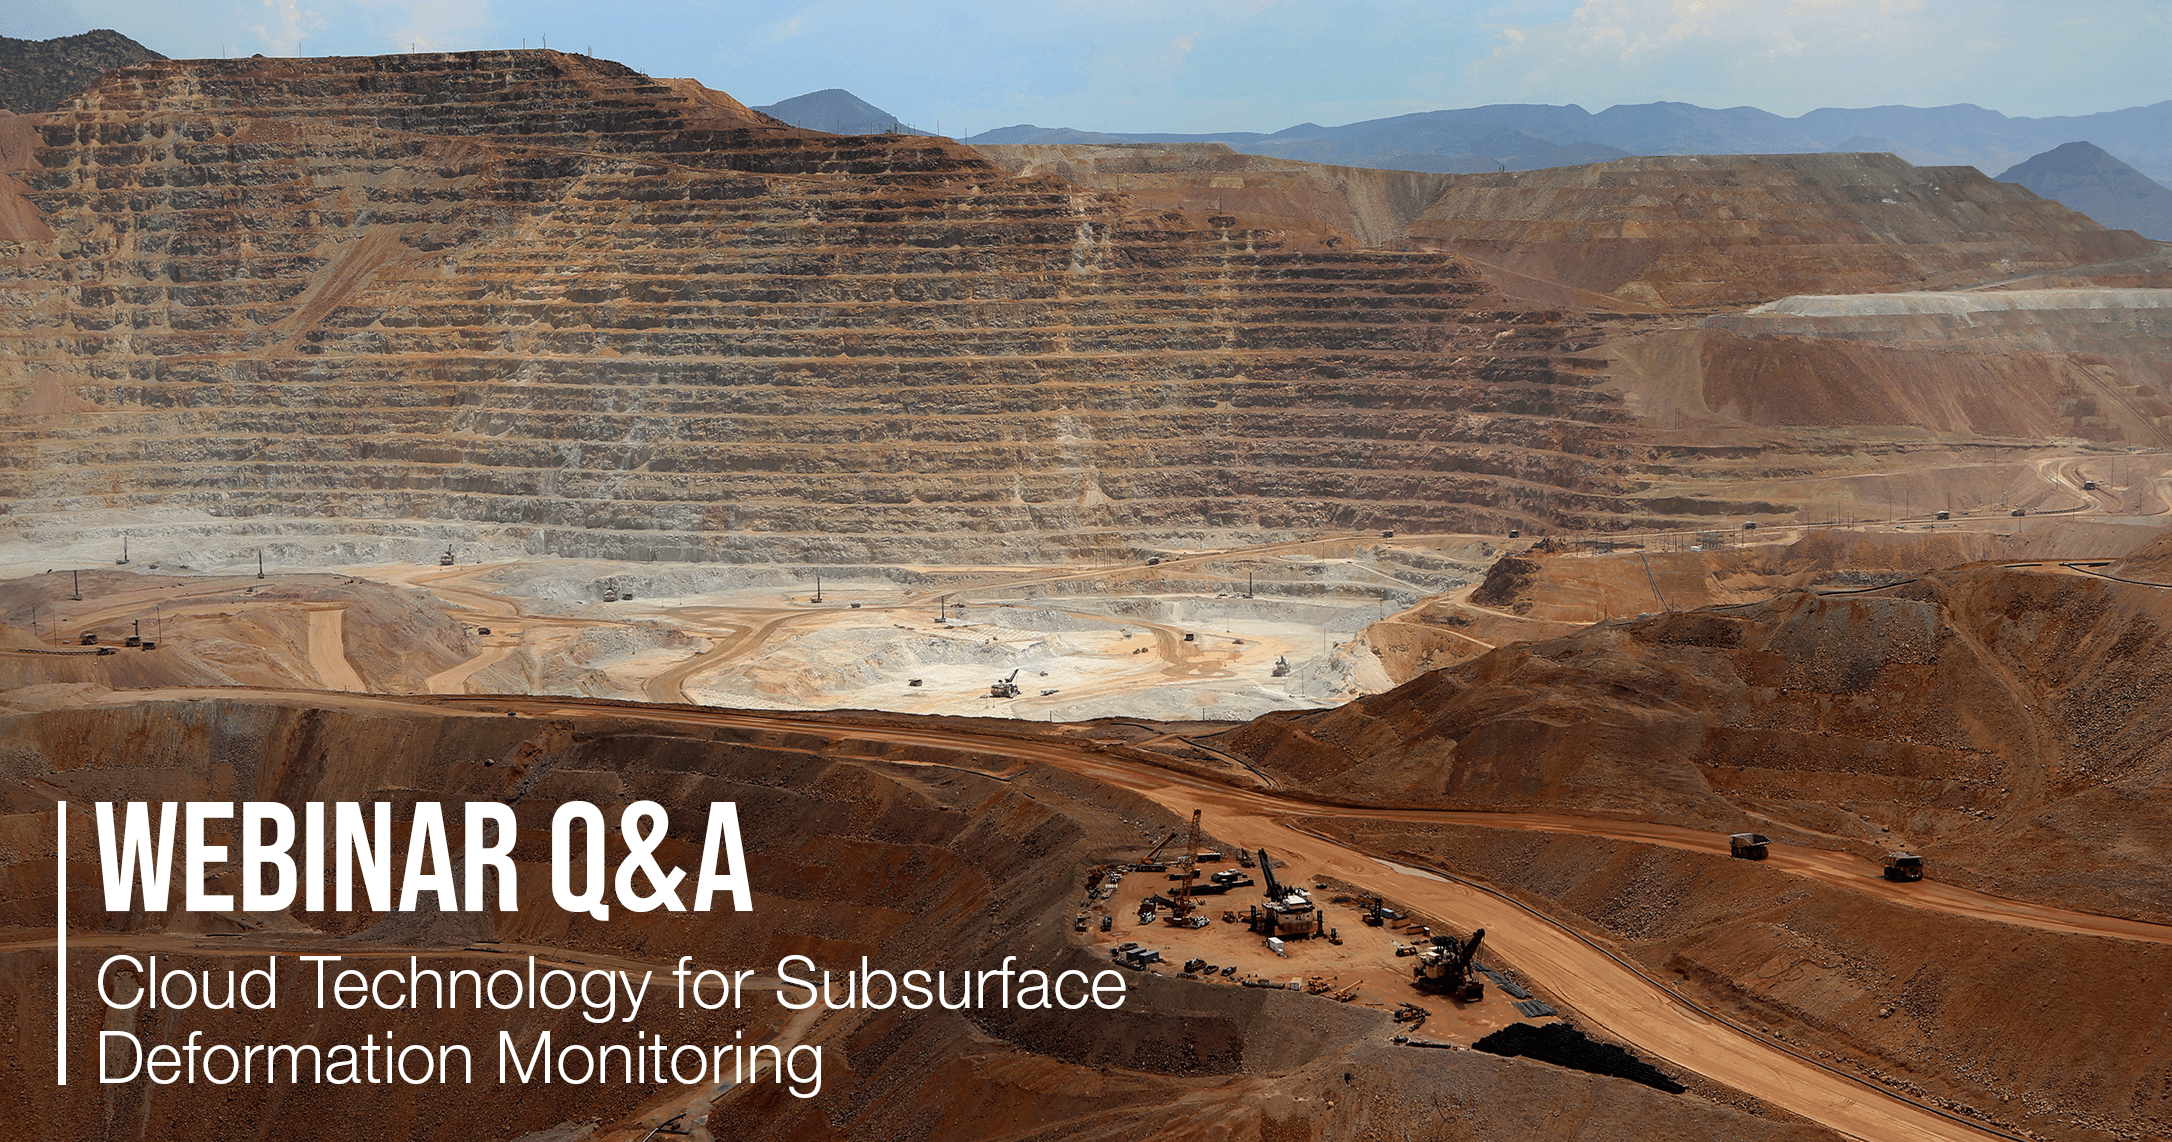 Webinar Q&A – Cloud Technology for Subsurface Deformation Monitoring